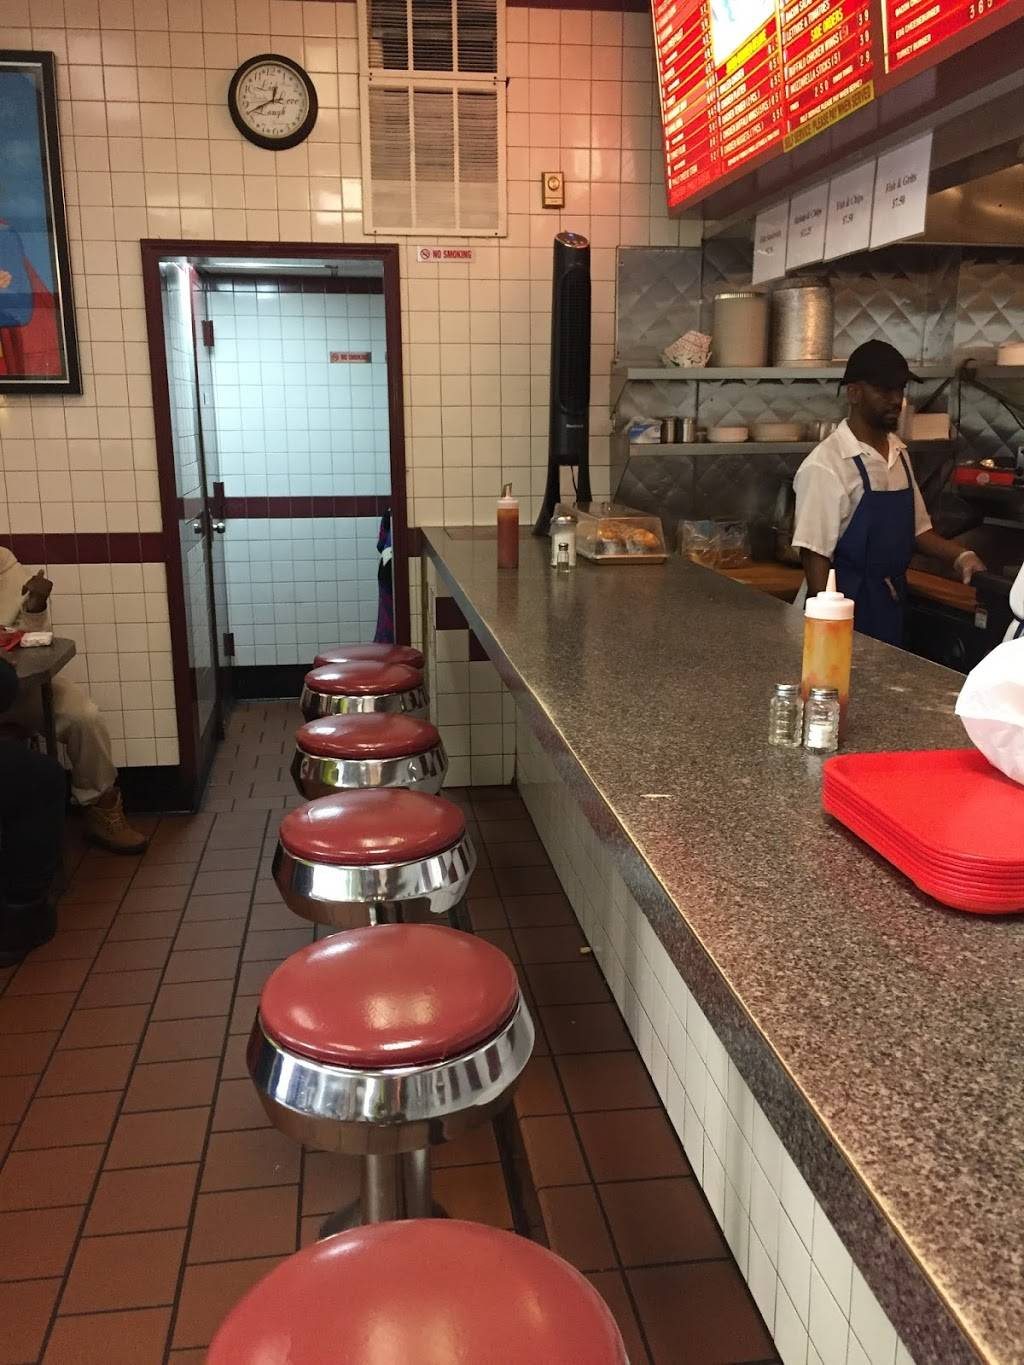 Jumbo Hamburgers | restaurant | 274 W 145th St, New York, NY 10039, USA | 2124915444 OR +1 212-491-5444